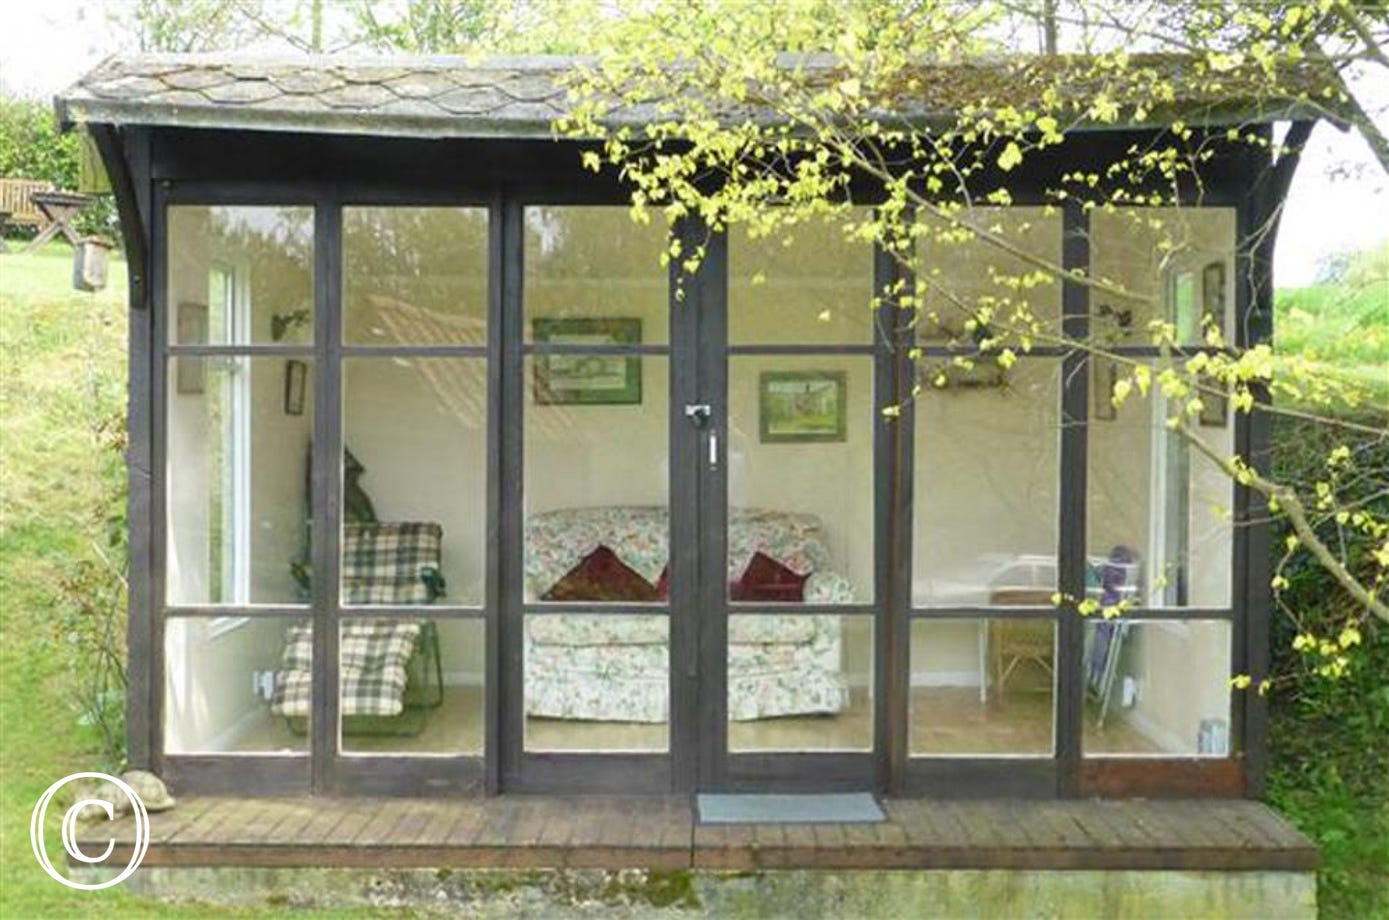 Enjoy sitting in this summer house and enjoying the generous gardens and grounds from within.